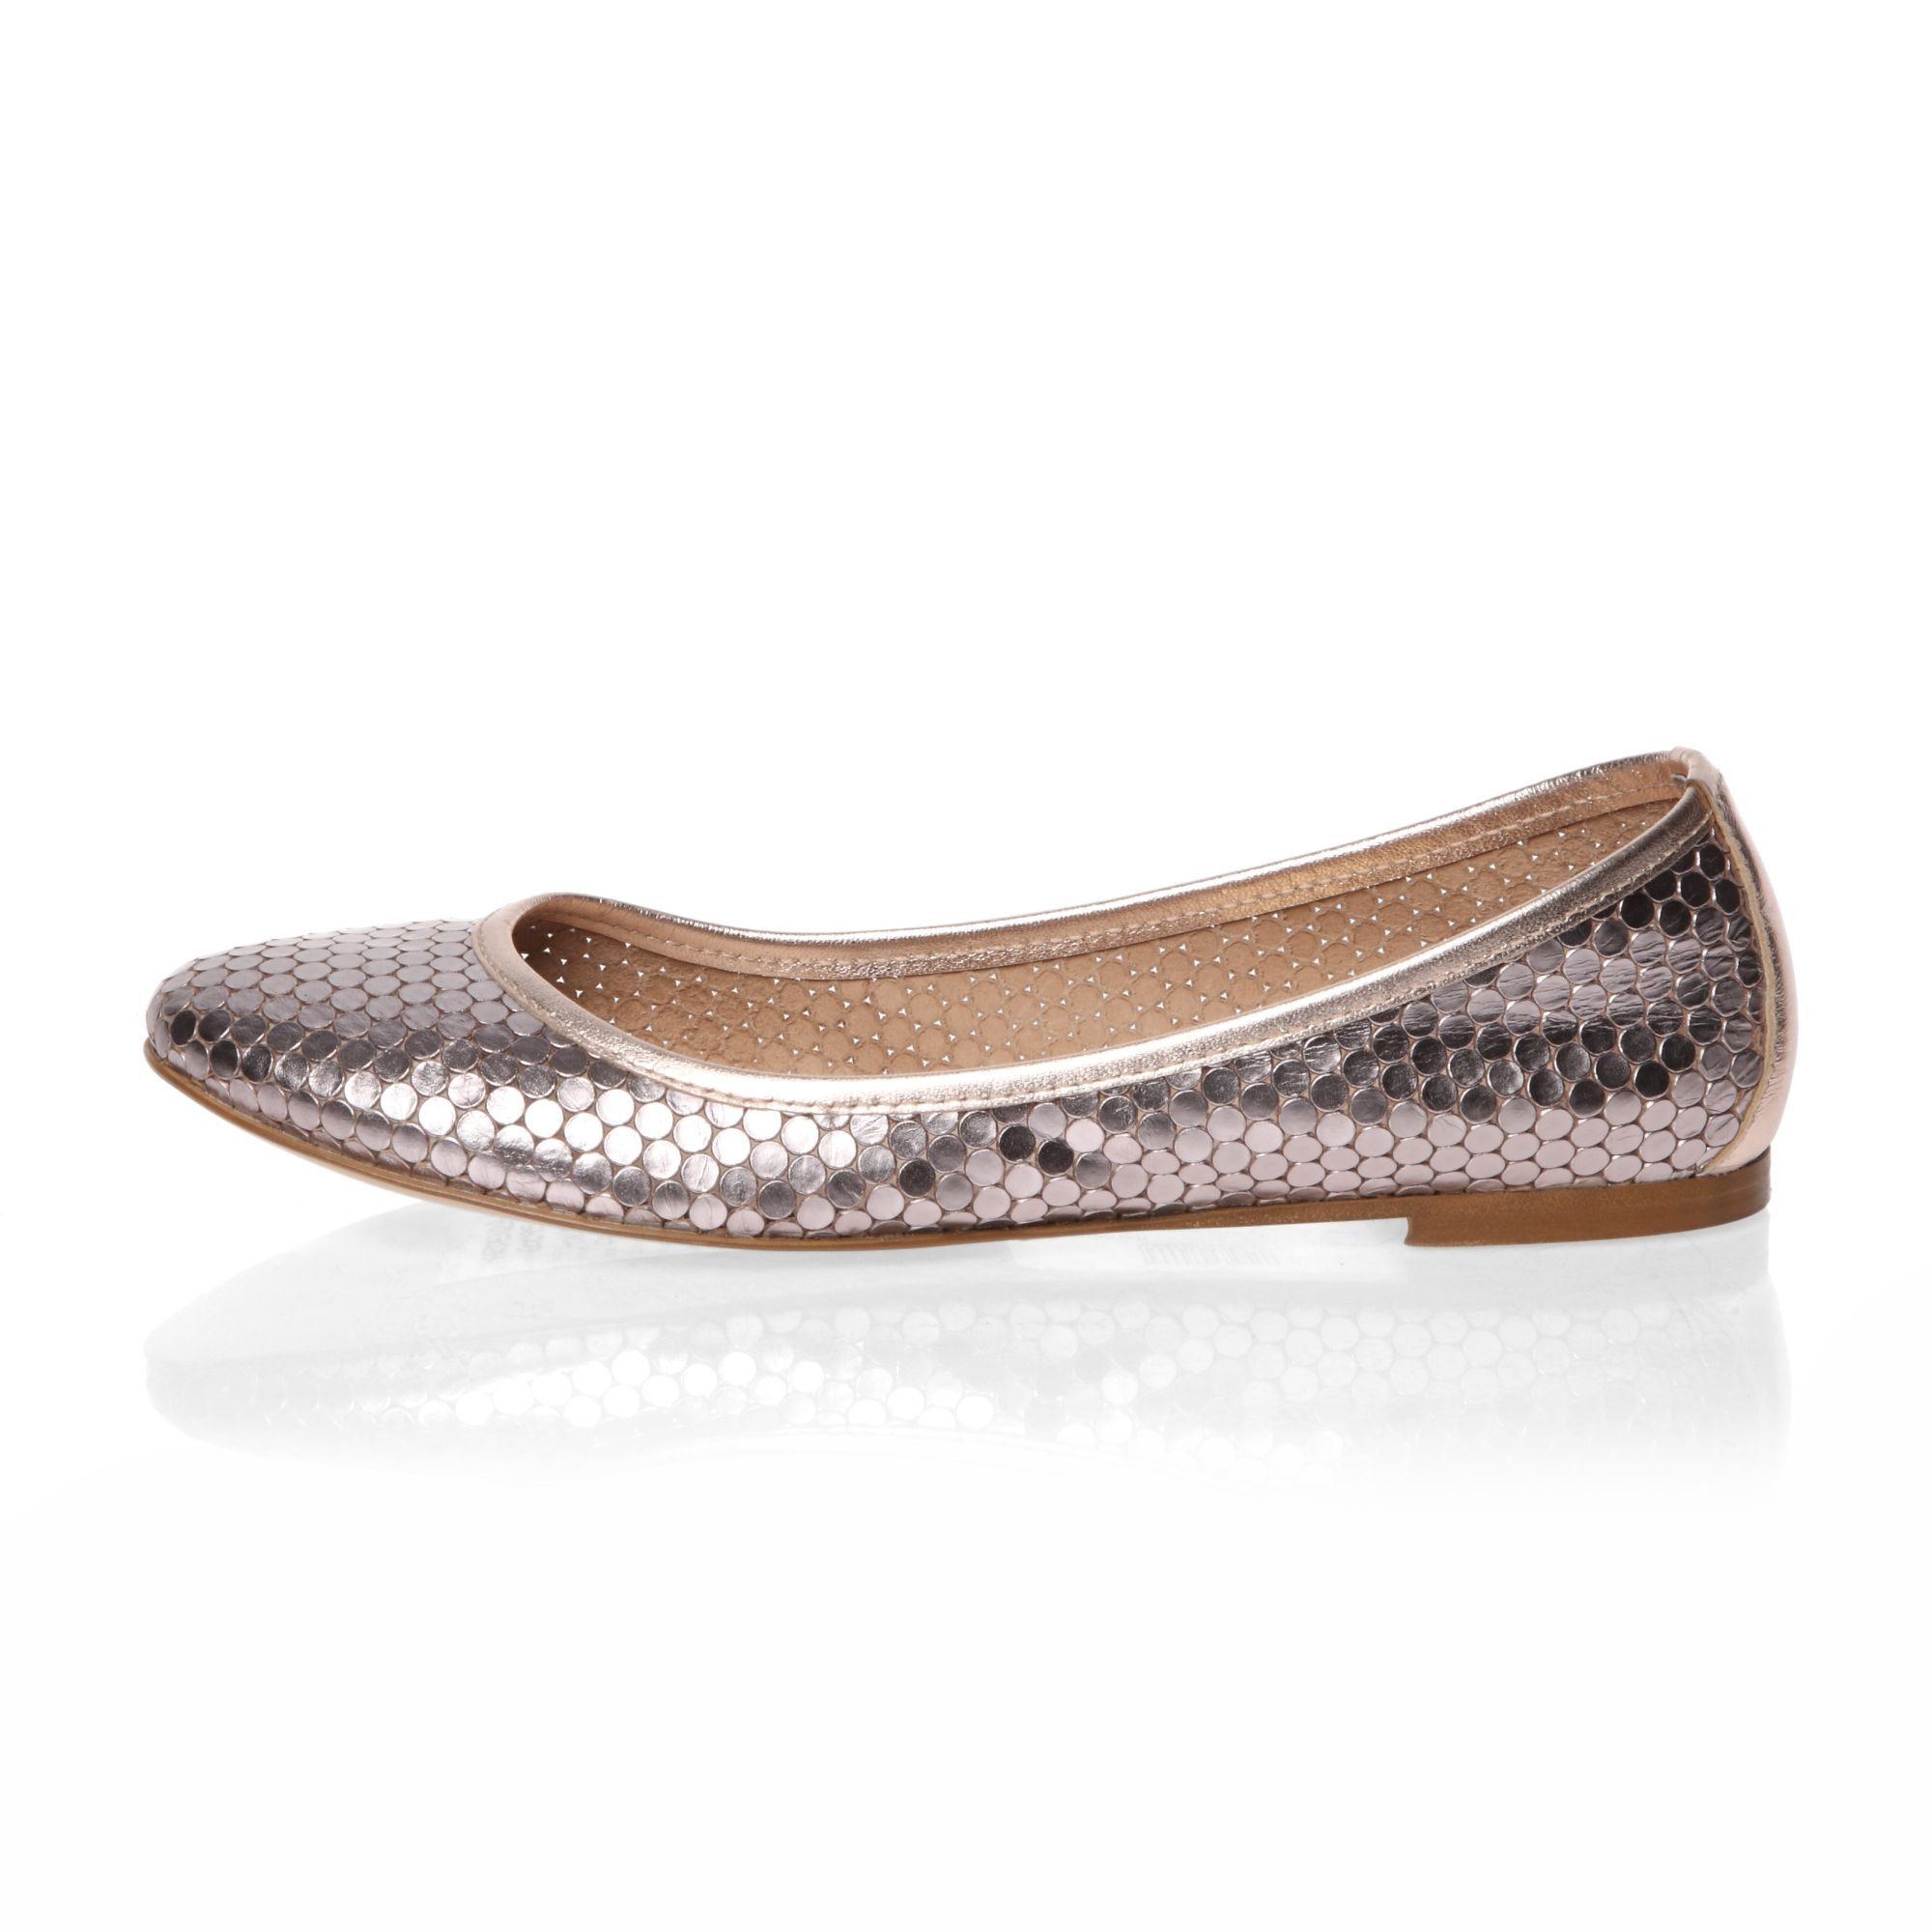 Embossed printed leather ballerina shoes